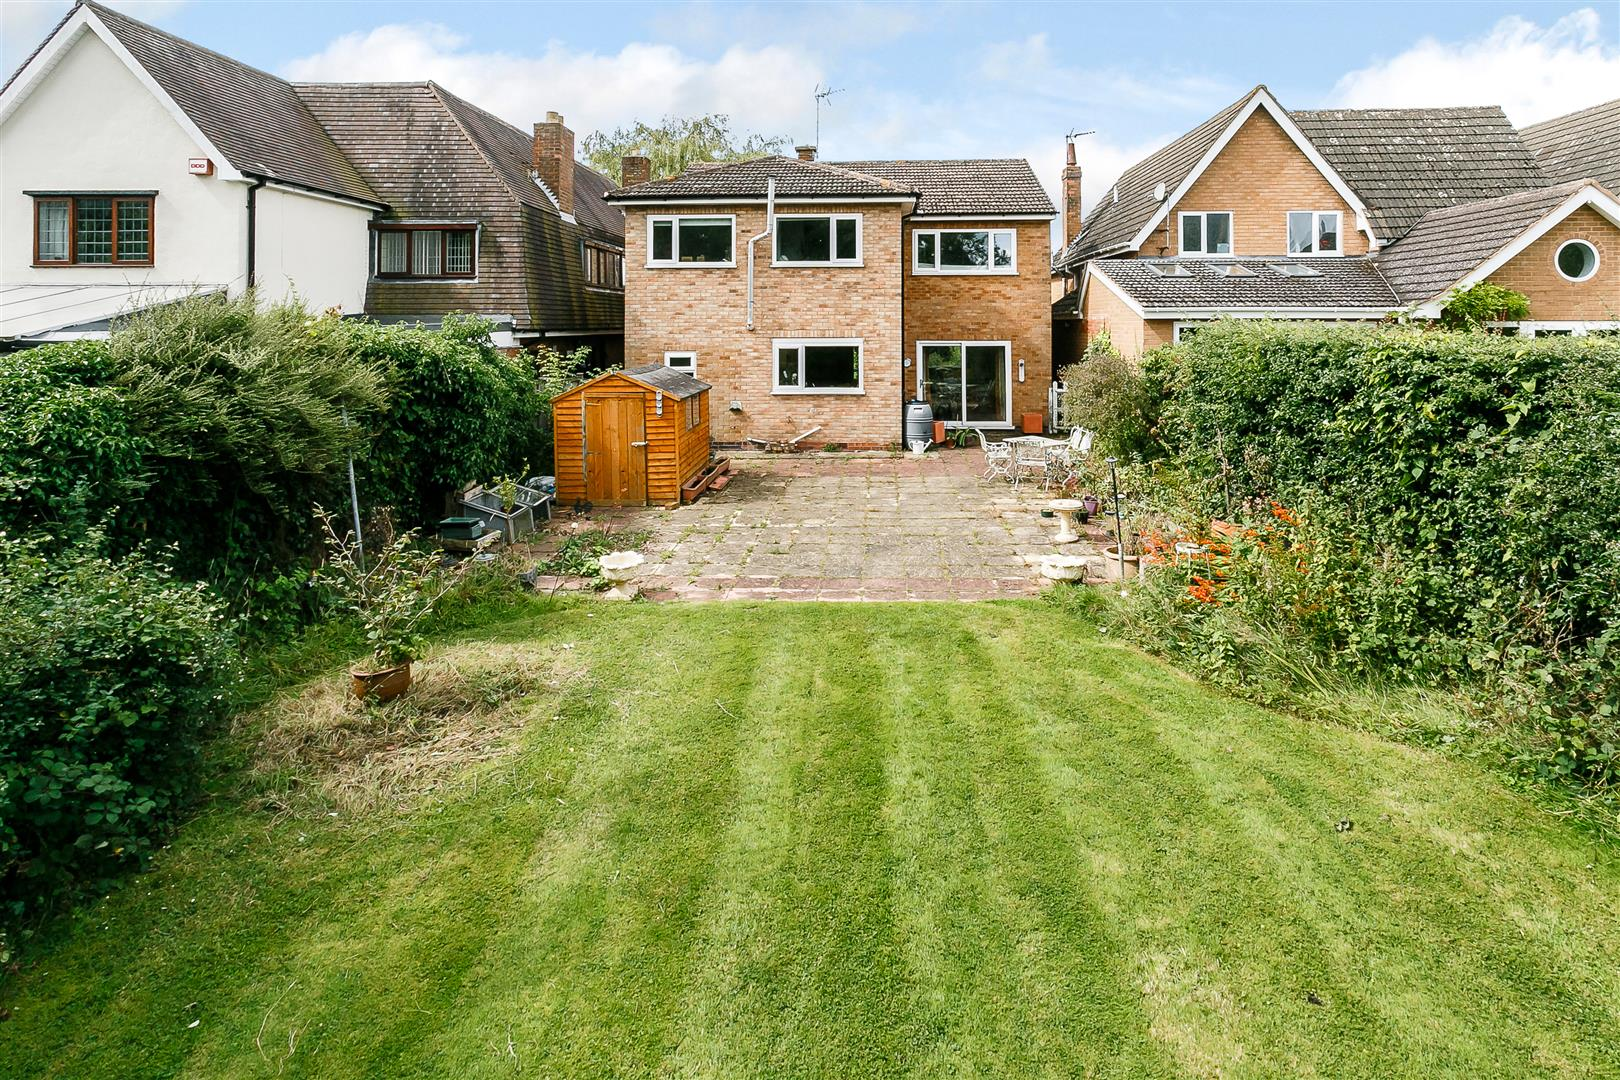 5 bedroom house for sale in solihull